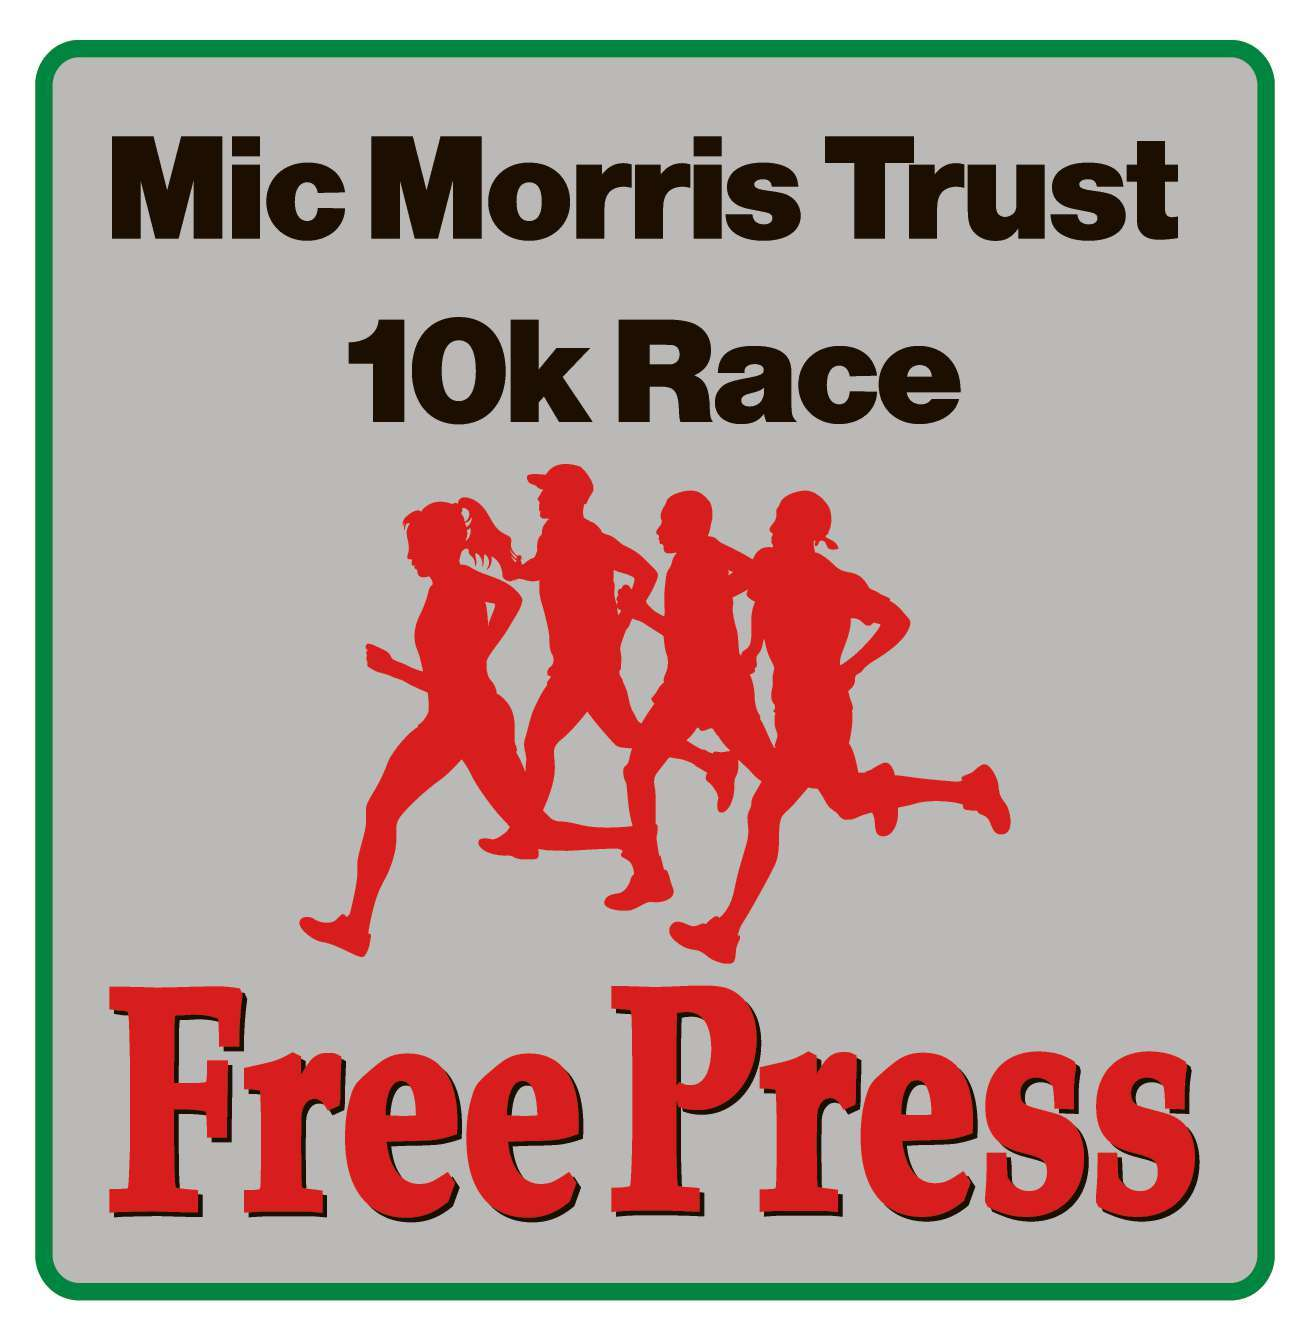 100 runners sign up for